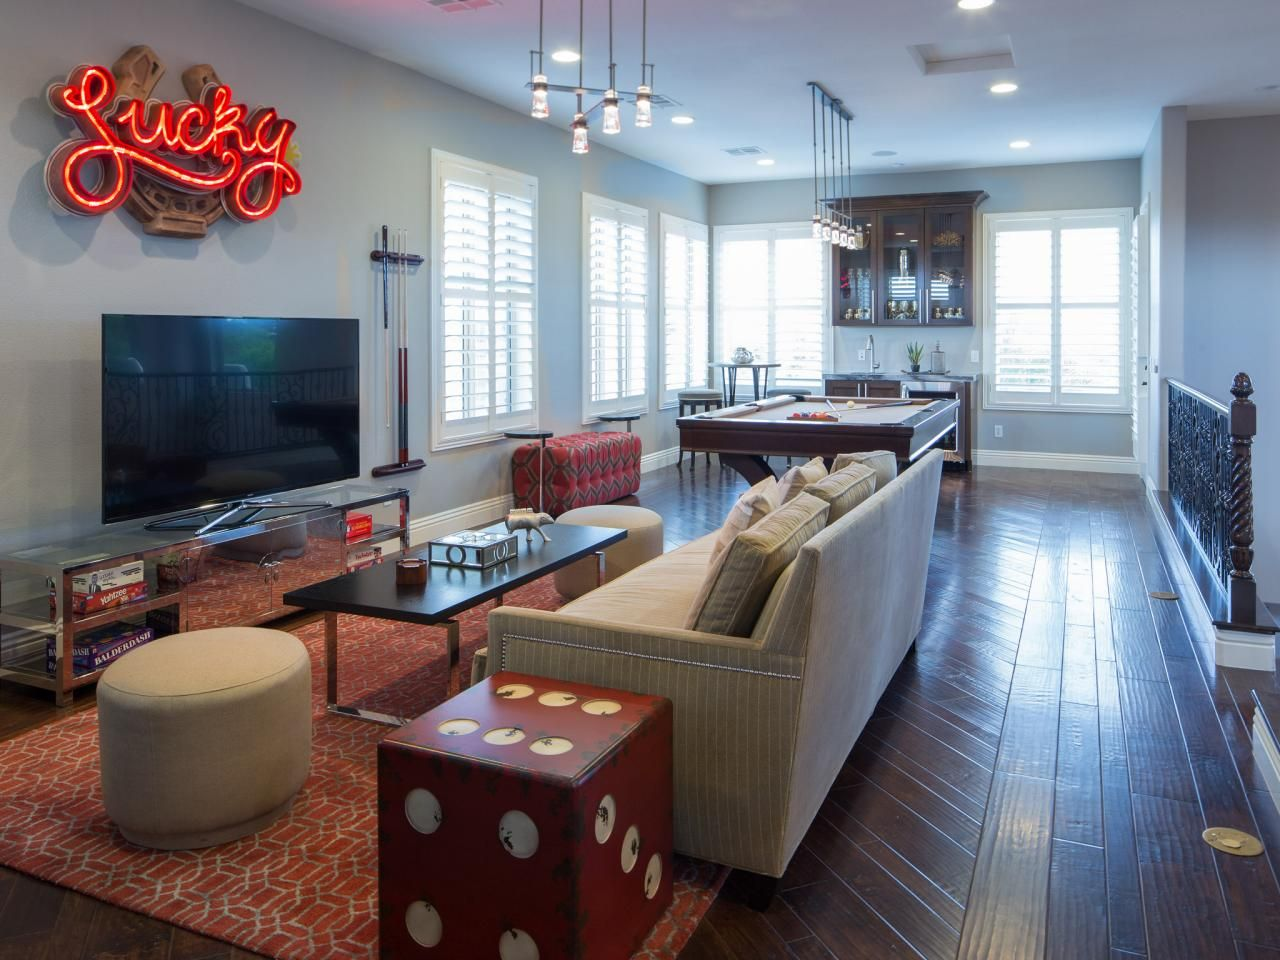 Before And After The Property Brothers Las Vegas Home Game Room Family Game Room Property Brothers At Home #property #brothers #living #room #ideas